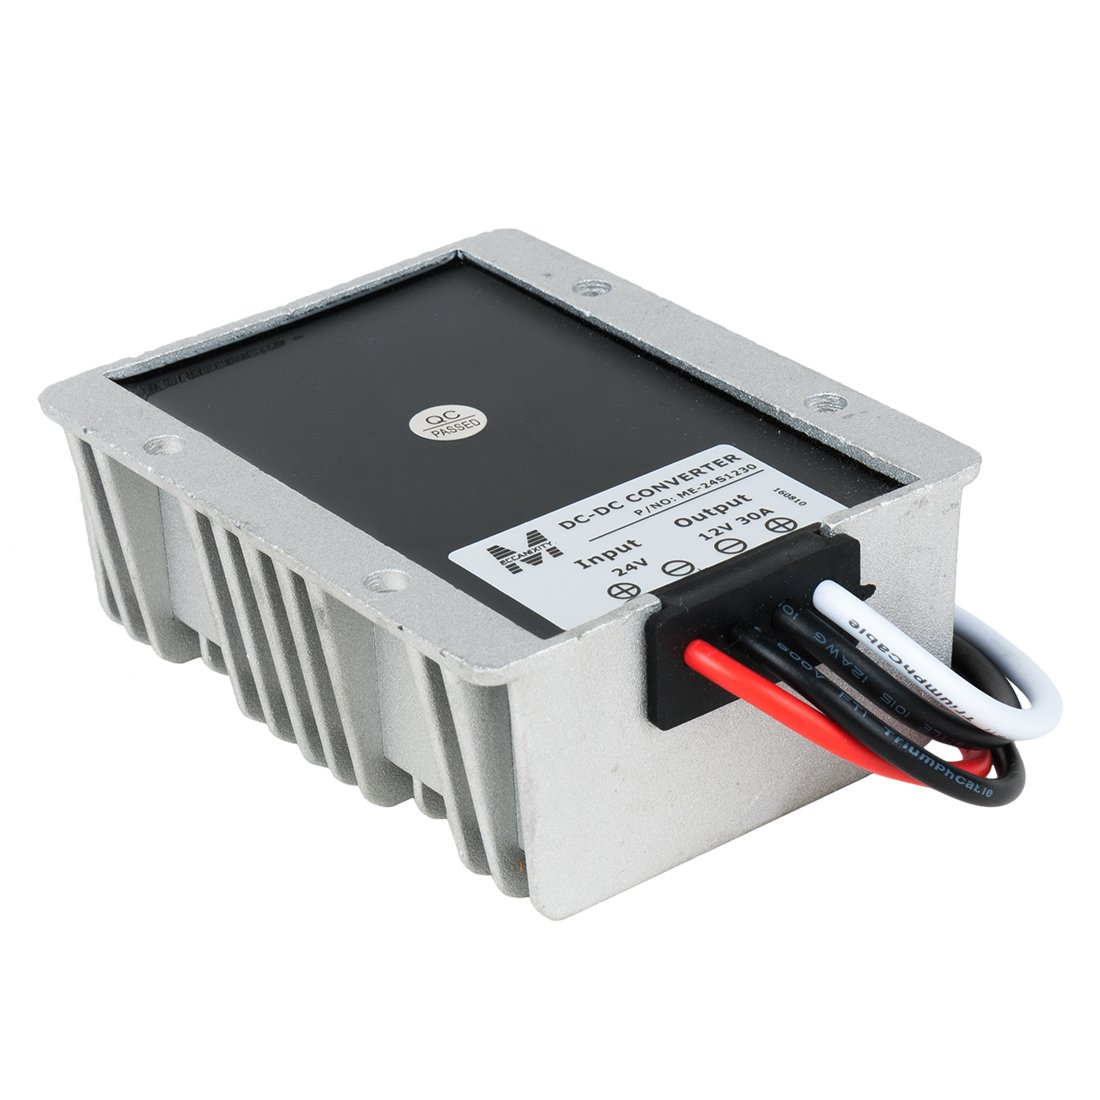 sourcing map DC 36V 24V 9-32V vers DC 12V 2A 24W Convertisseur Tension Alimentation stabilisant